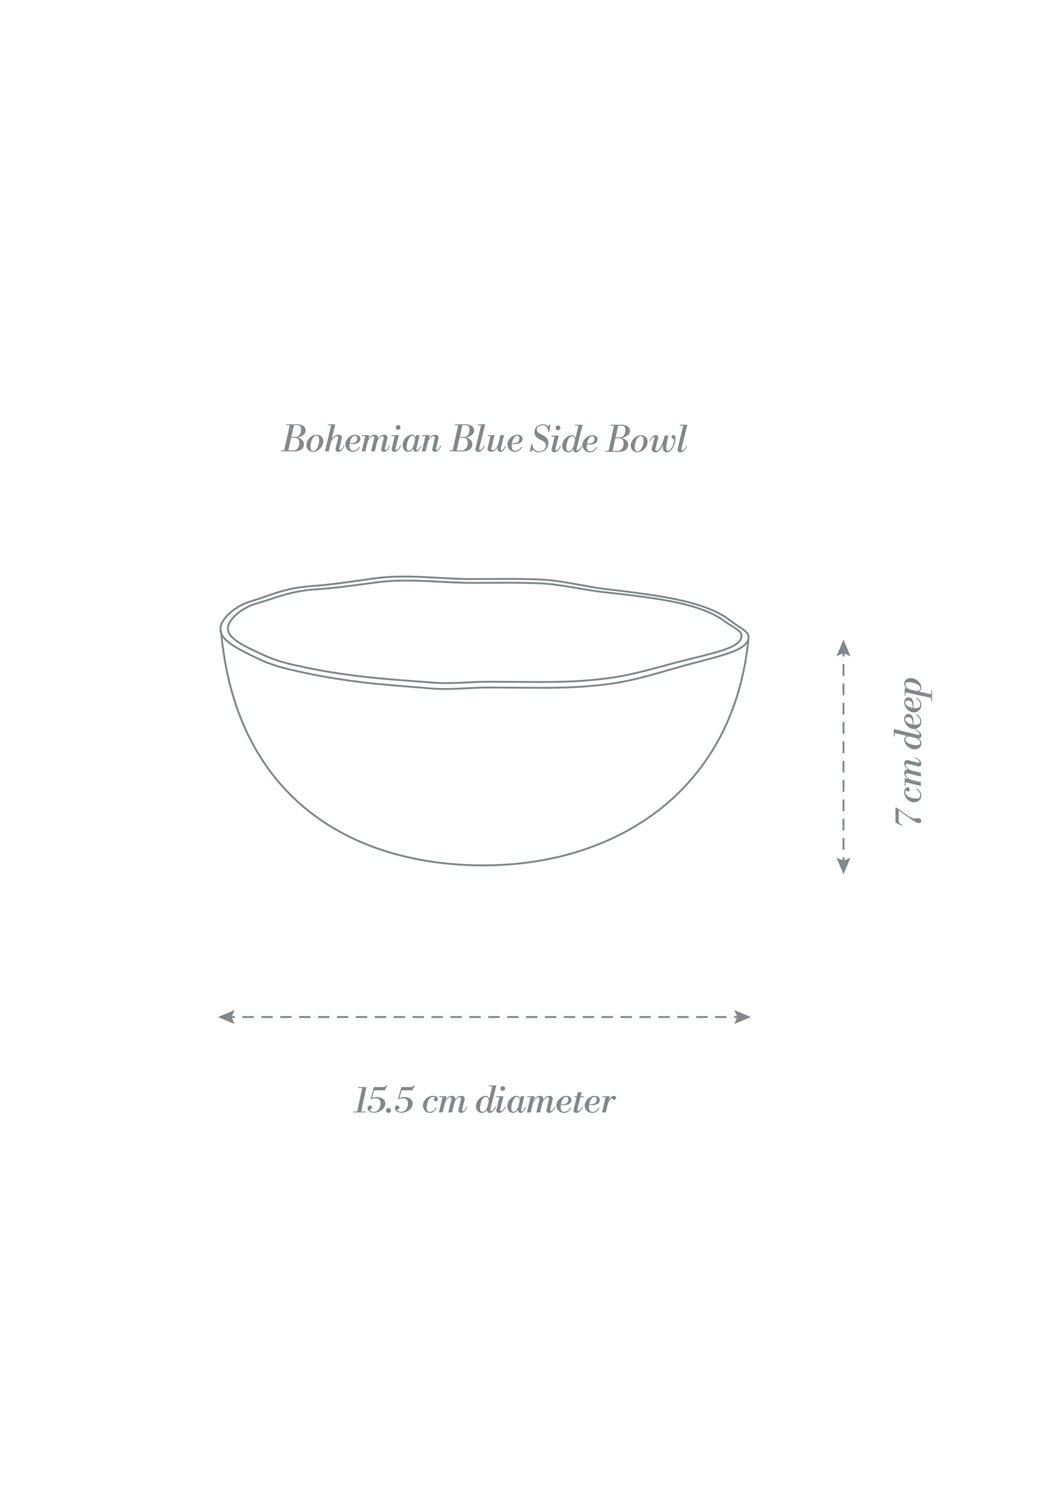 Bohemian Blue Dinner Set Side Bowl Product Diagram